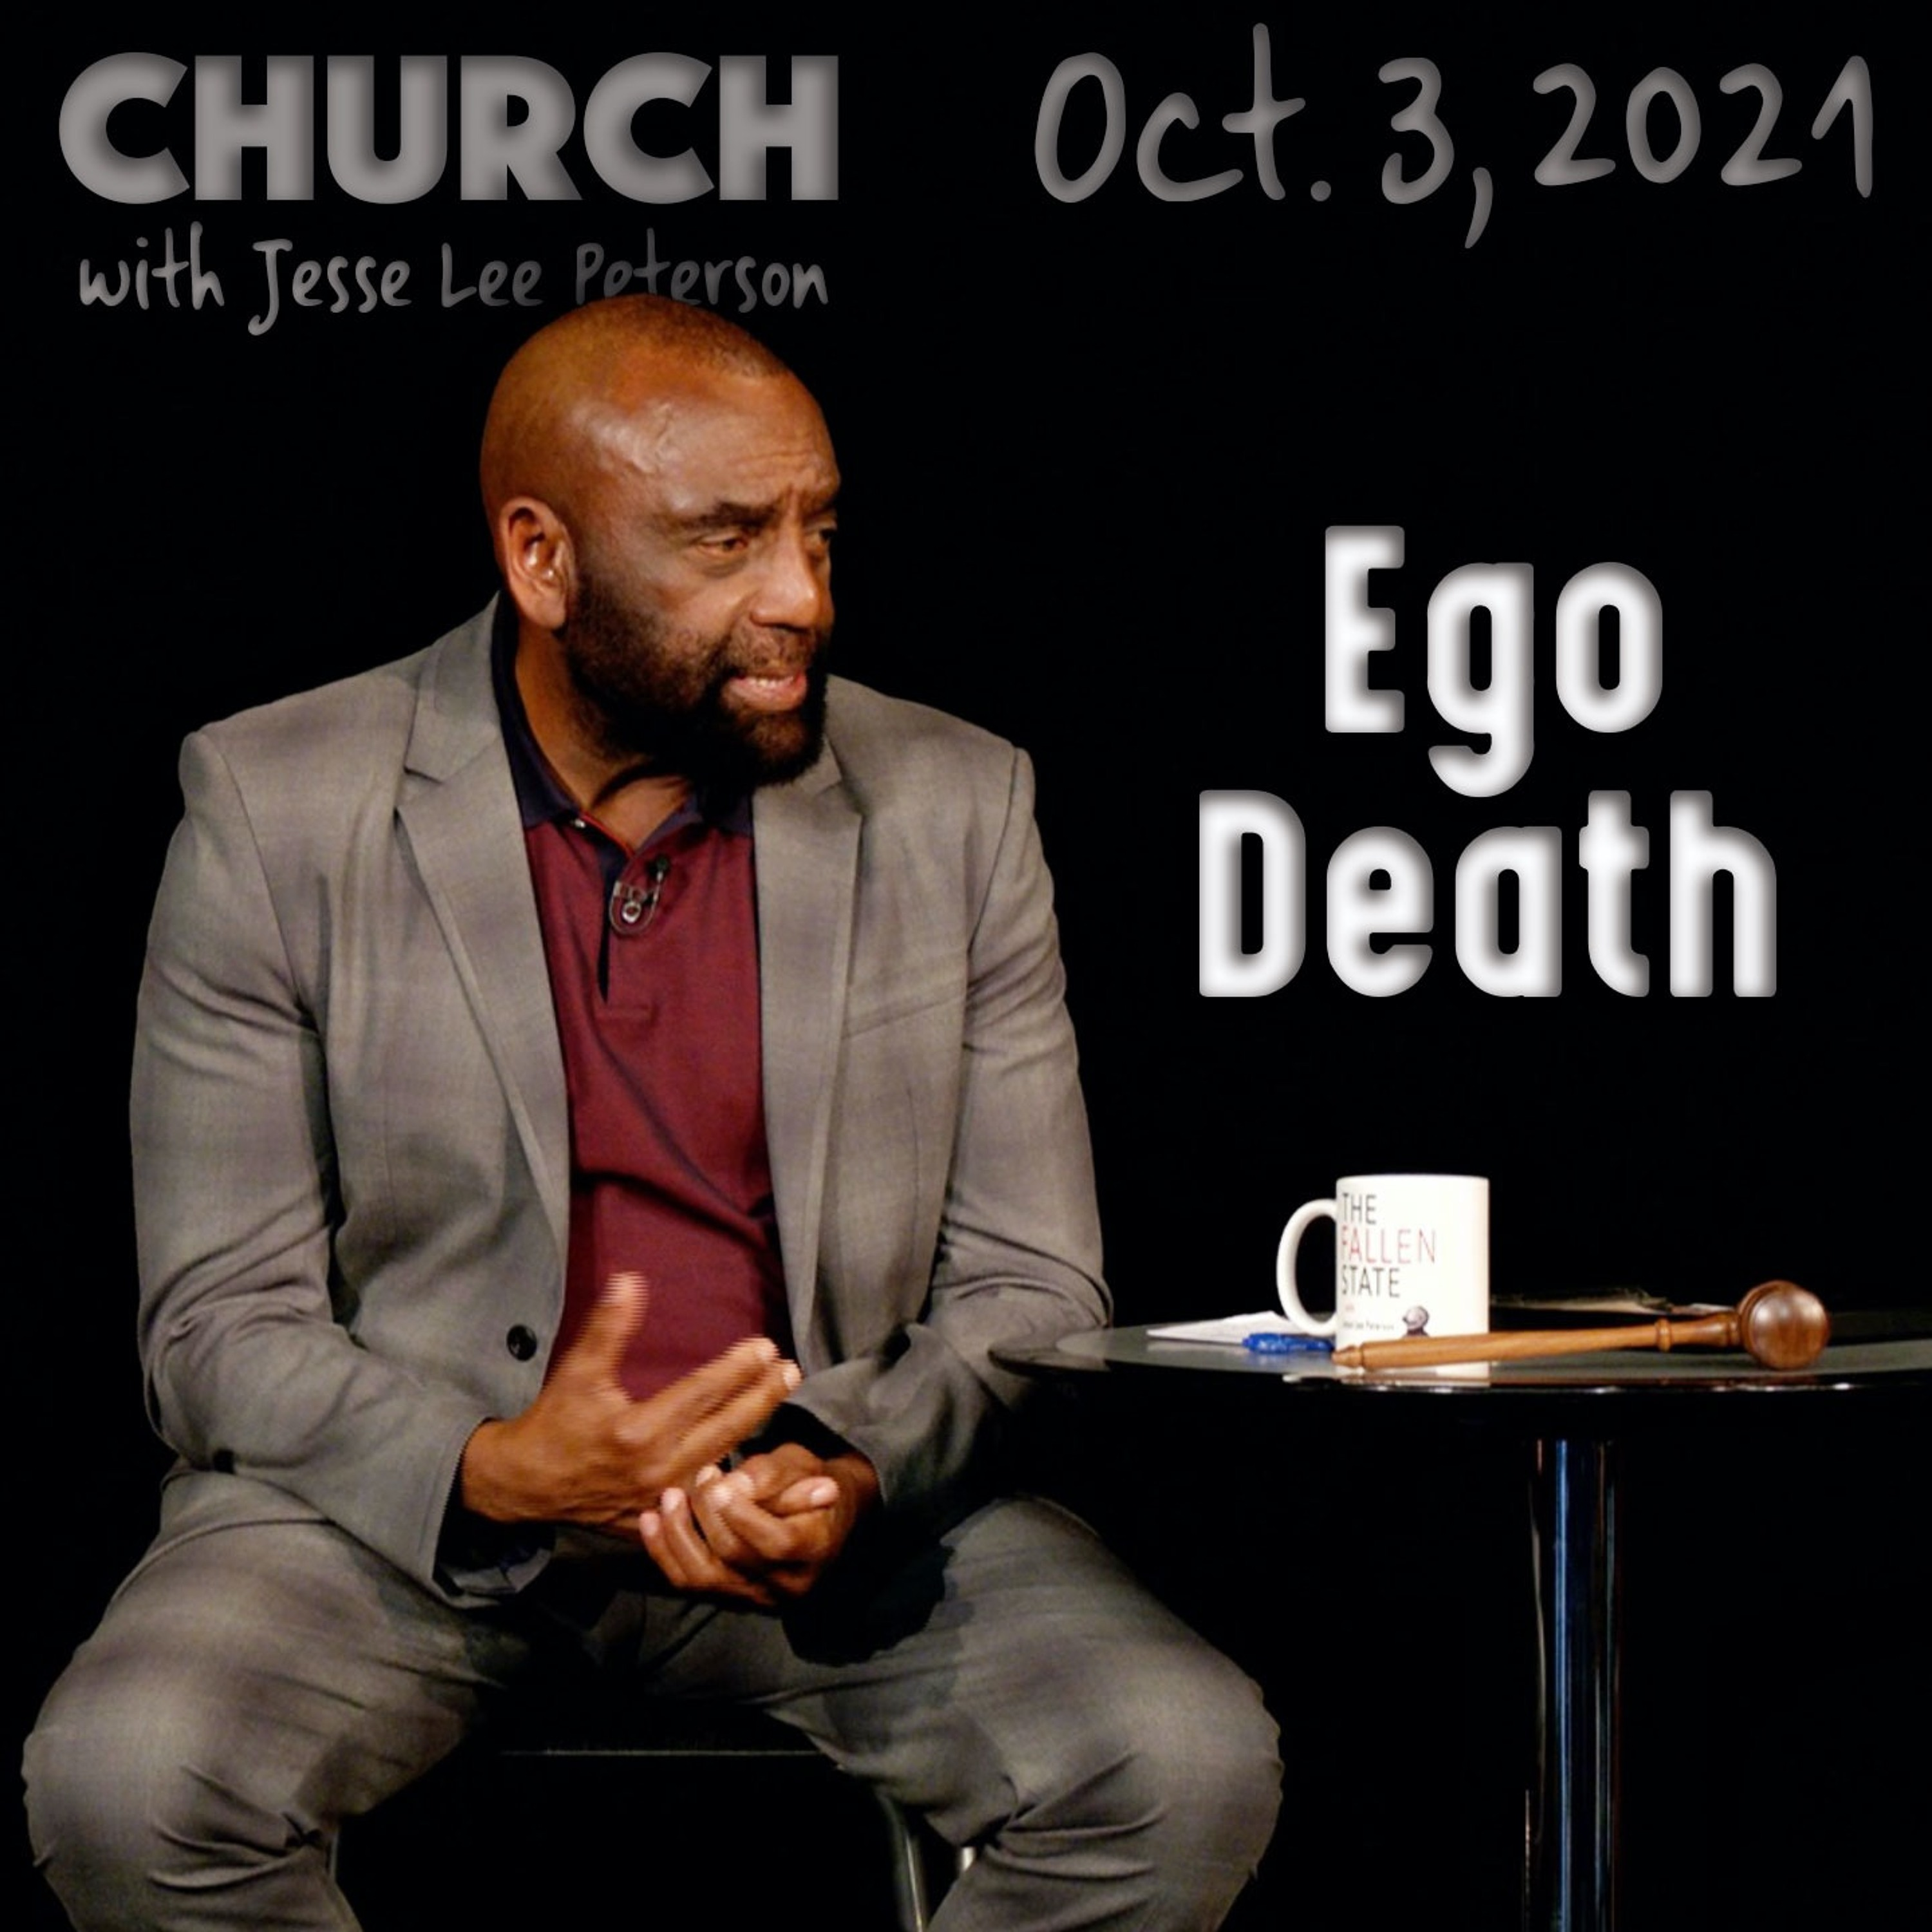 10/03/21 Endure the Ego Pain, Let It Die, and Live (Church)